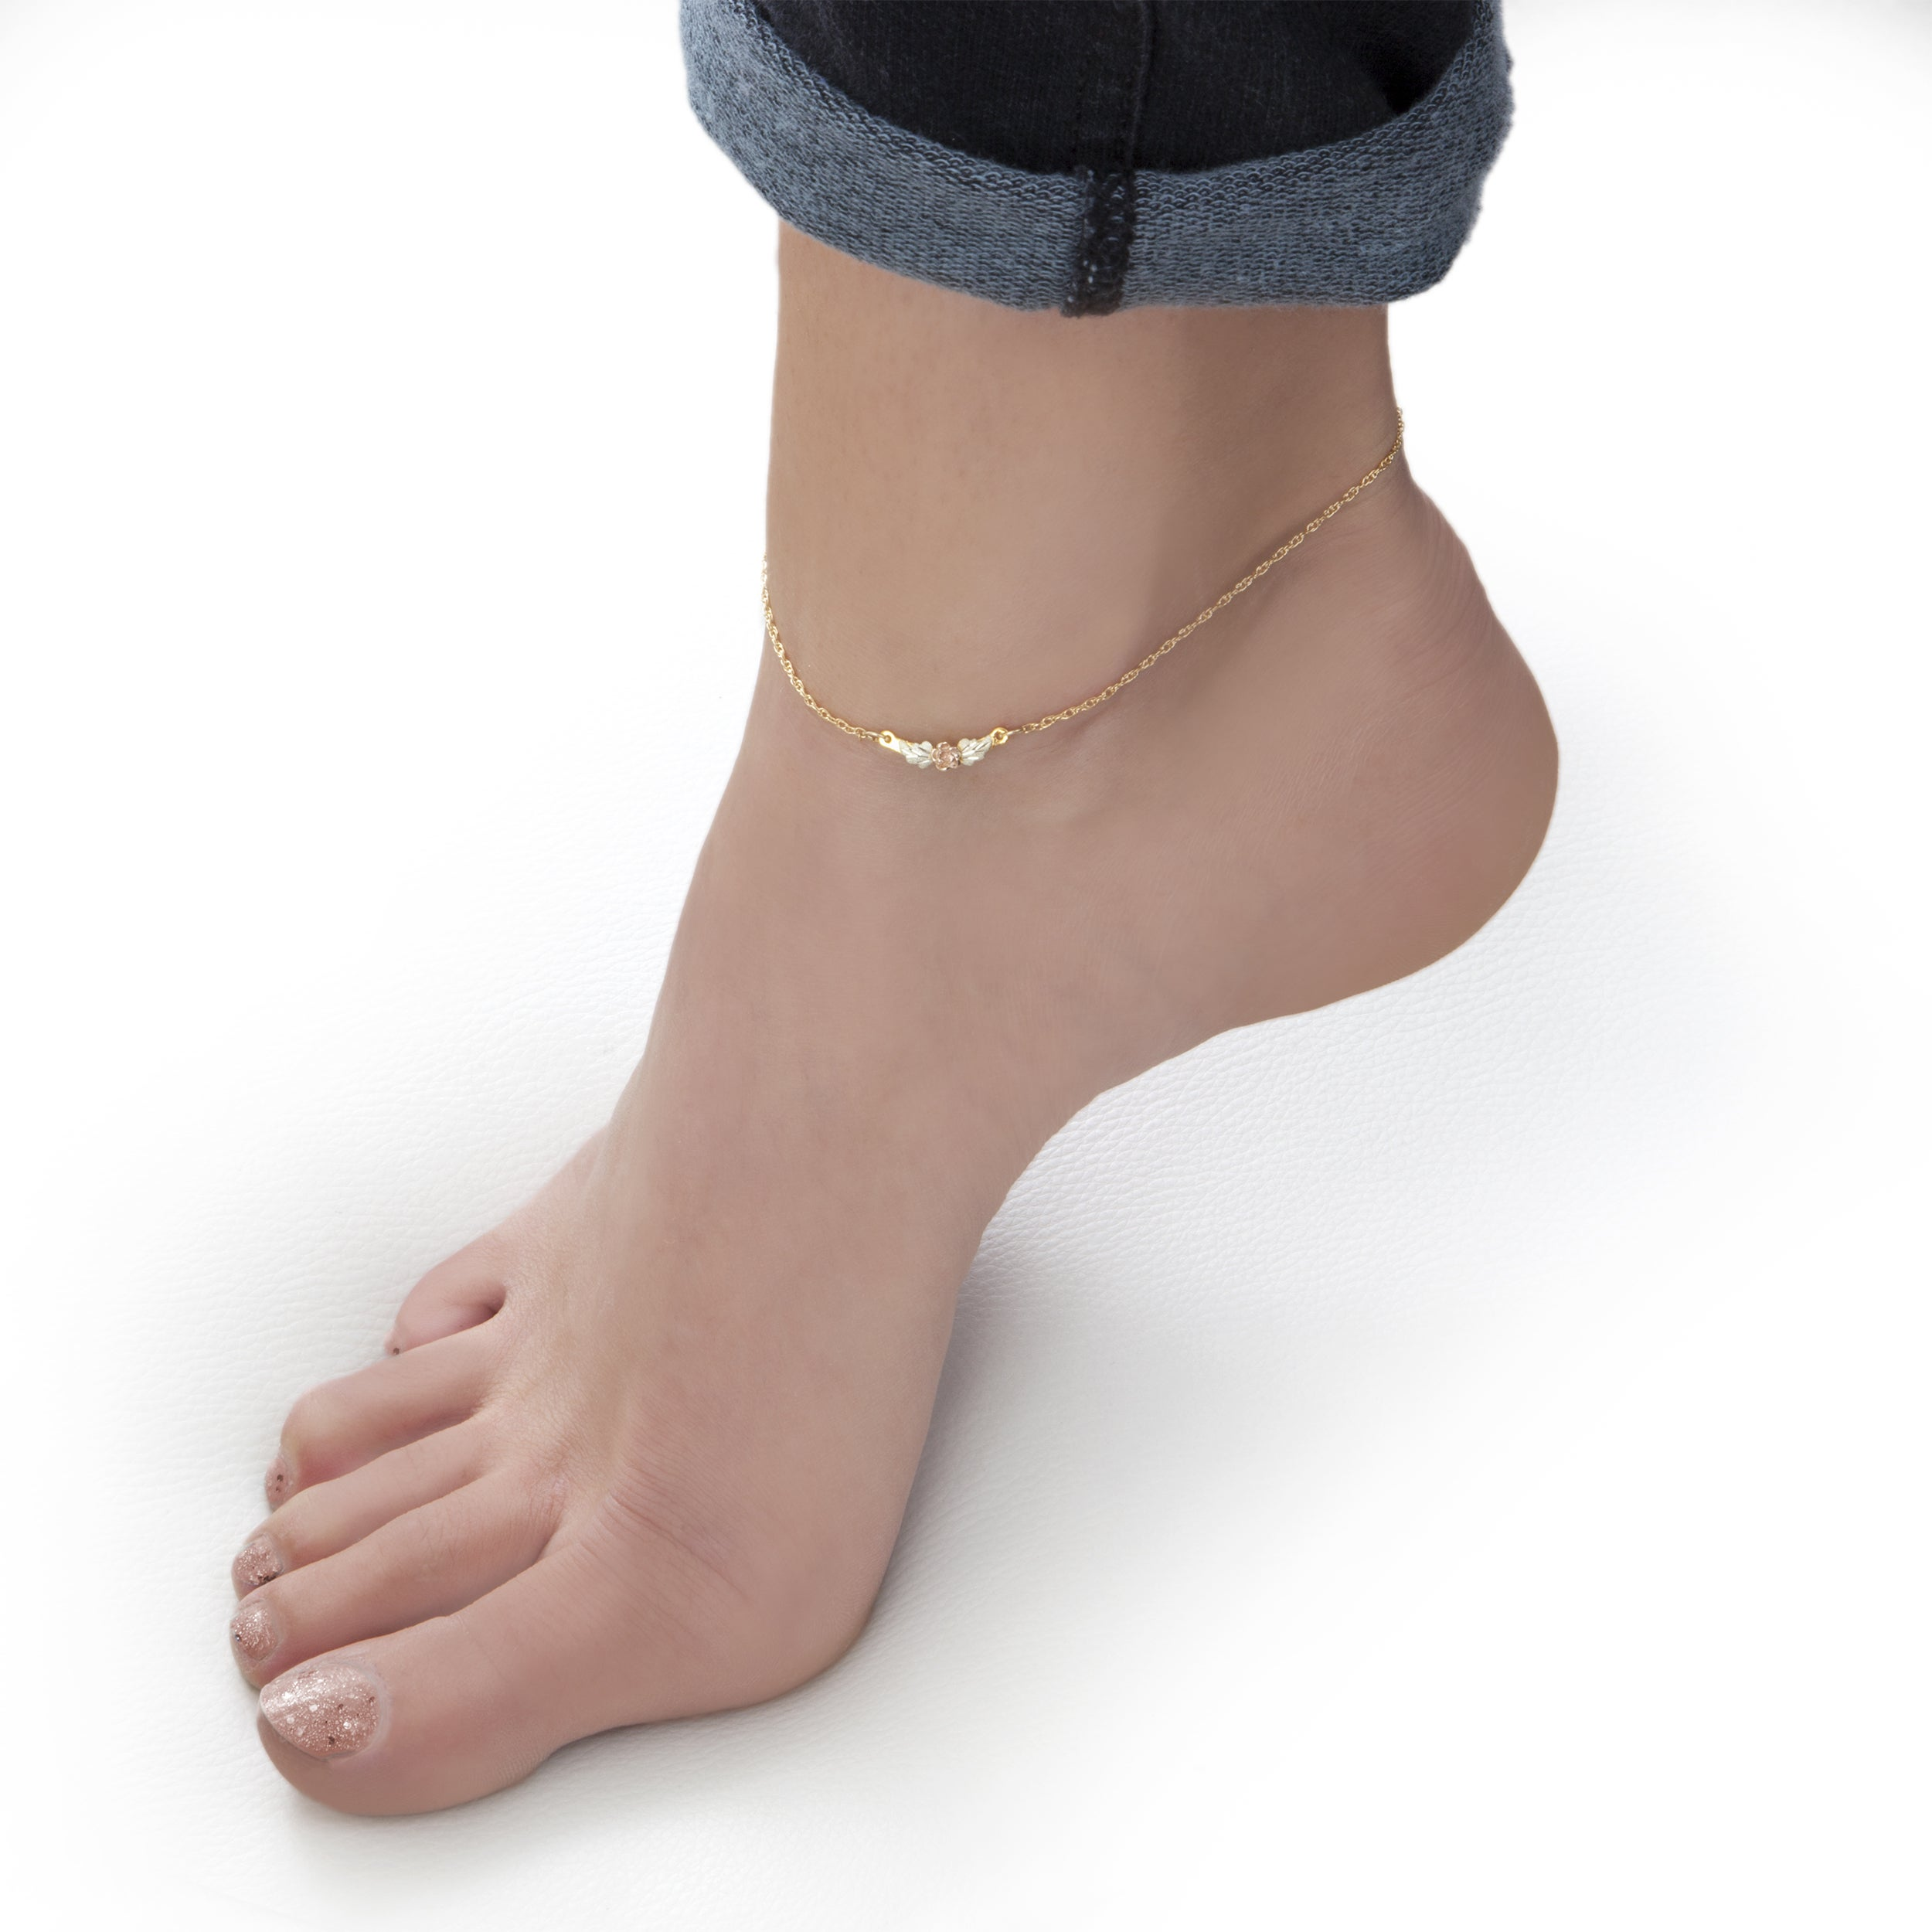 gold anklet pack turn size pima anklets s pair socks plus pr women picture p of white new whta cuff toe gt for pk main cotton extended womens